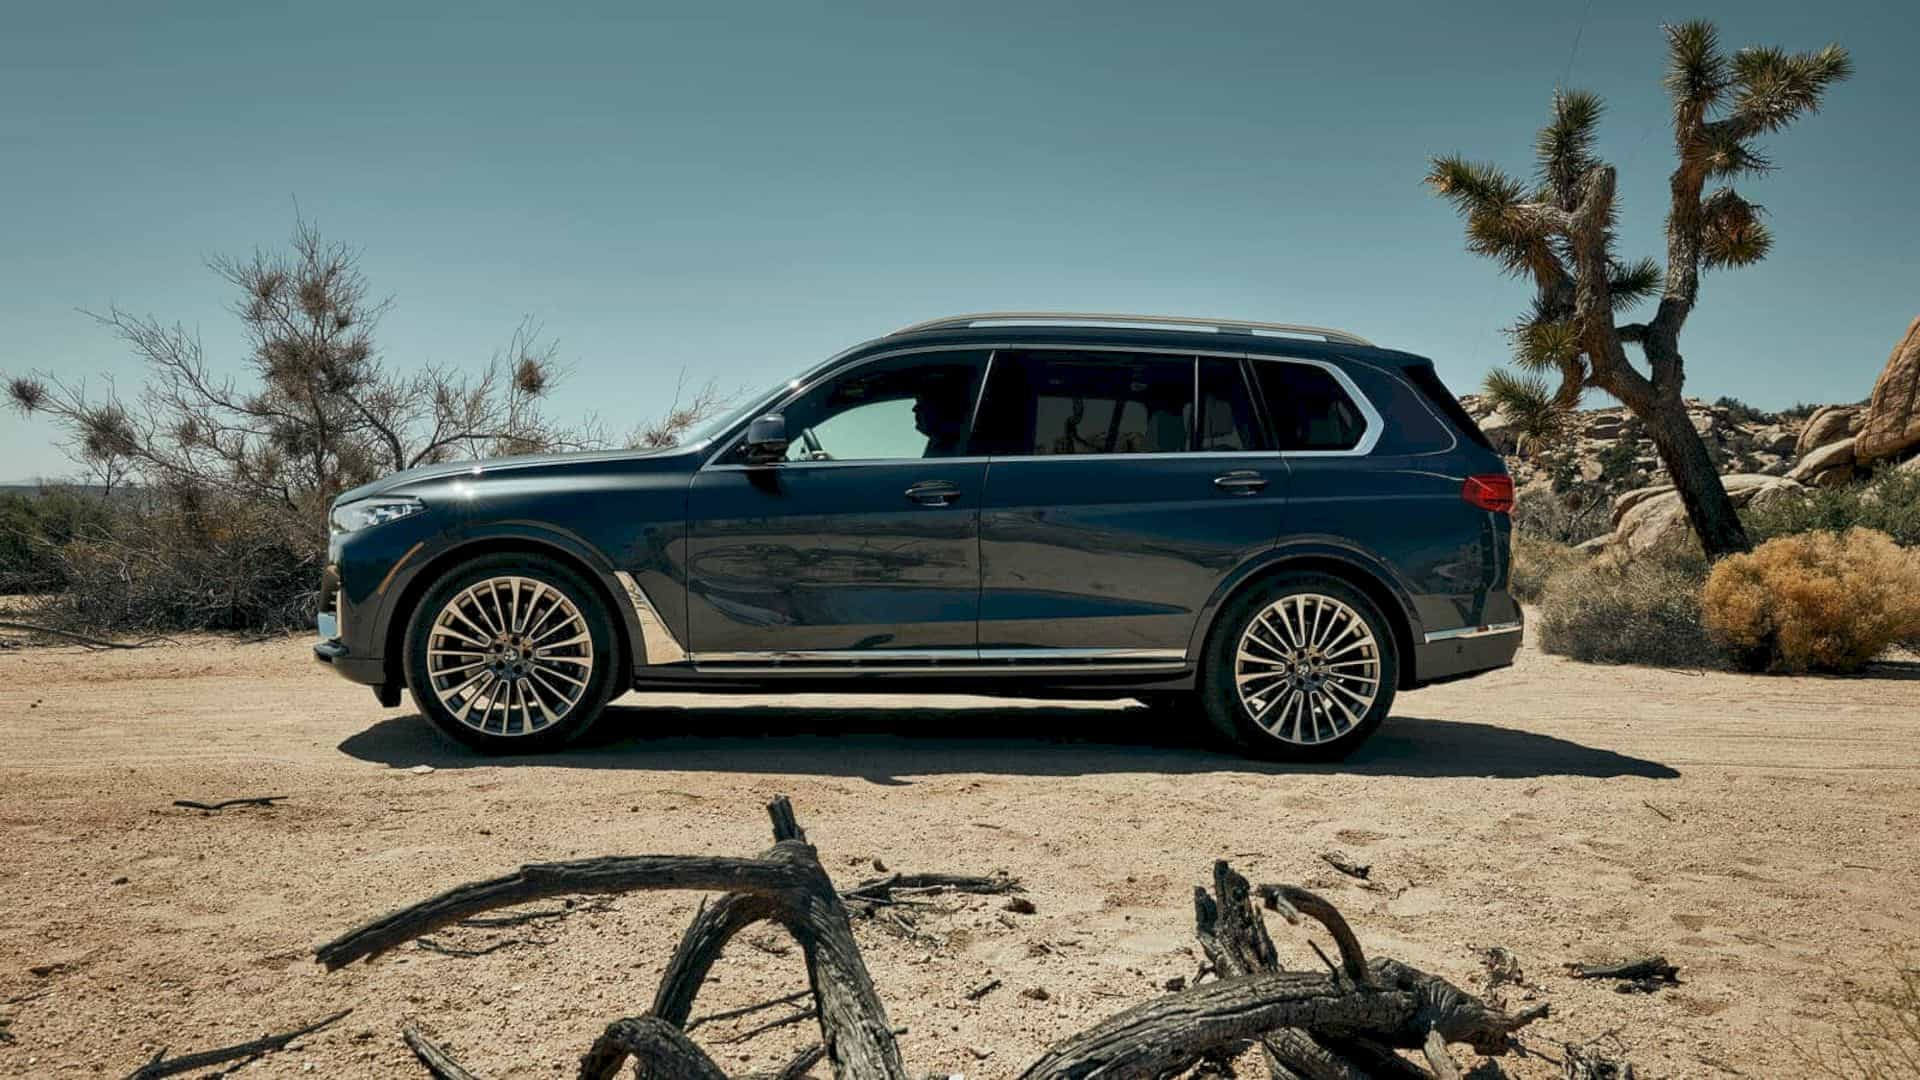 BMW X7 SAV: With Unrivaled Power Comes the Euphoria of Existing